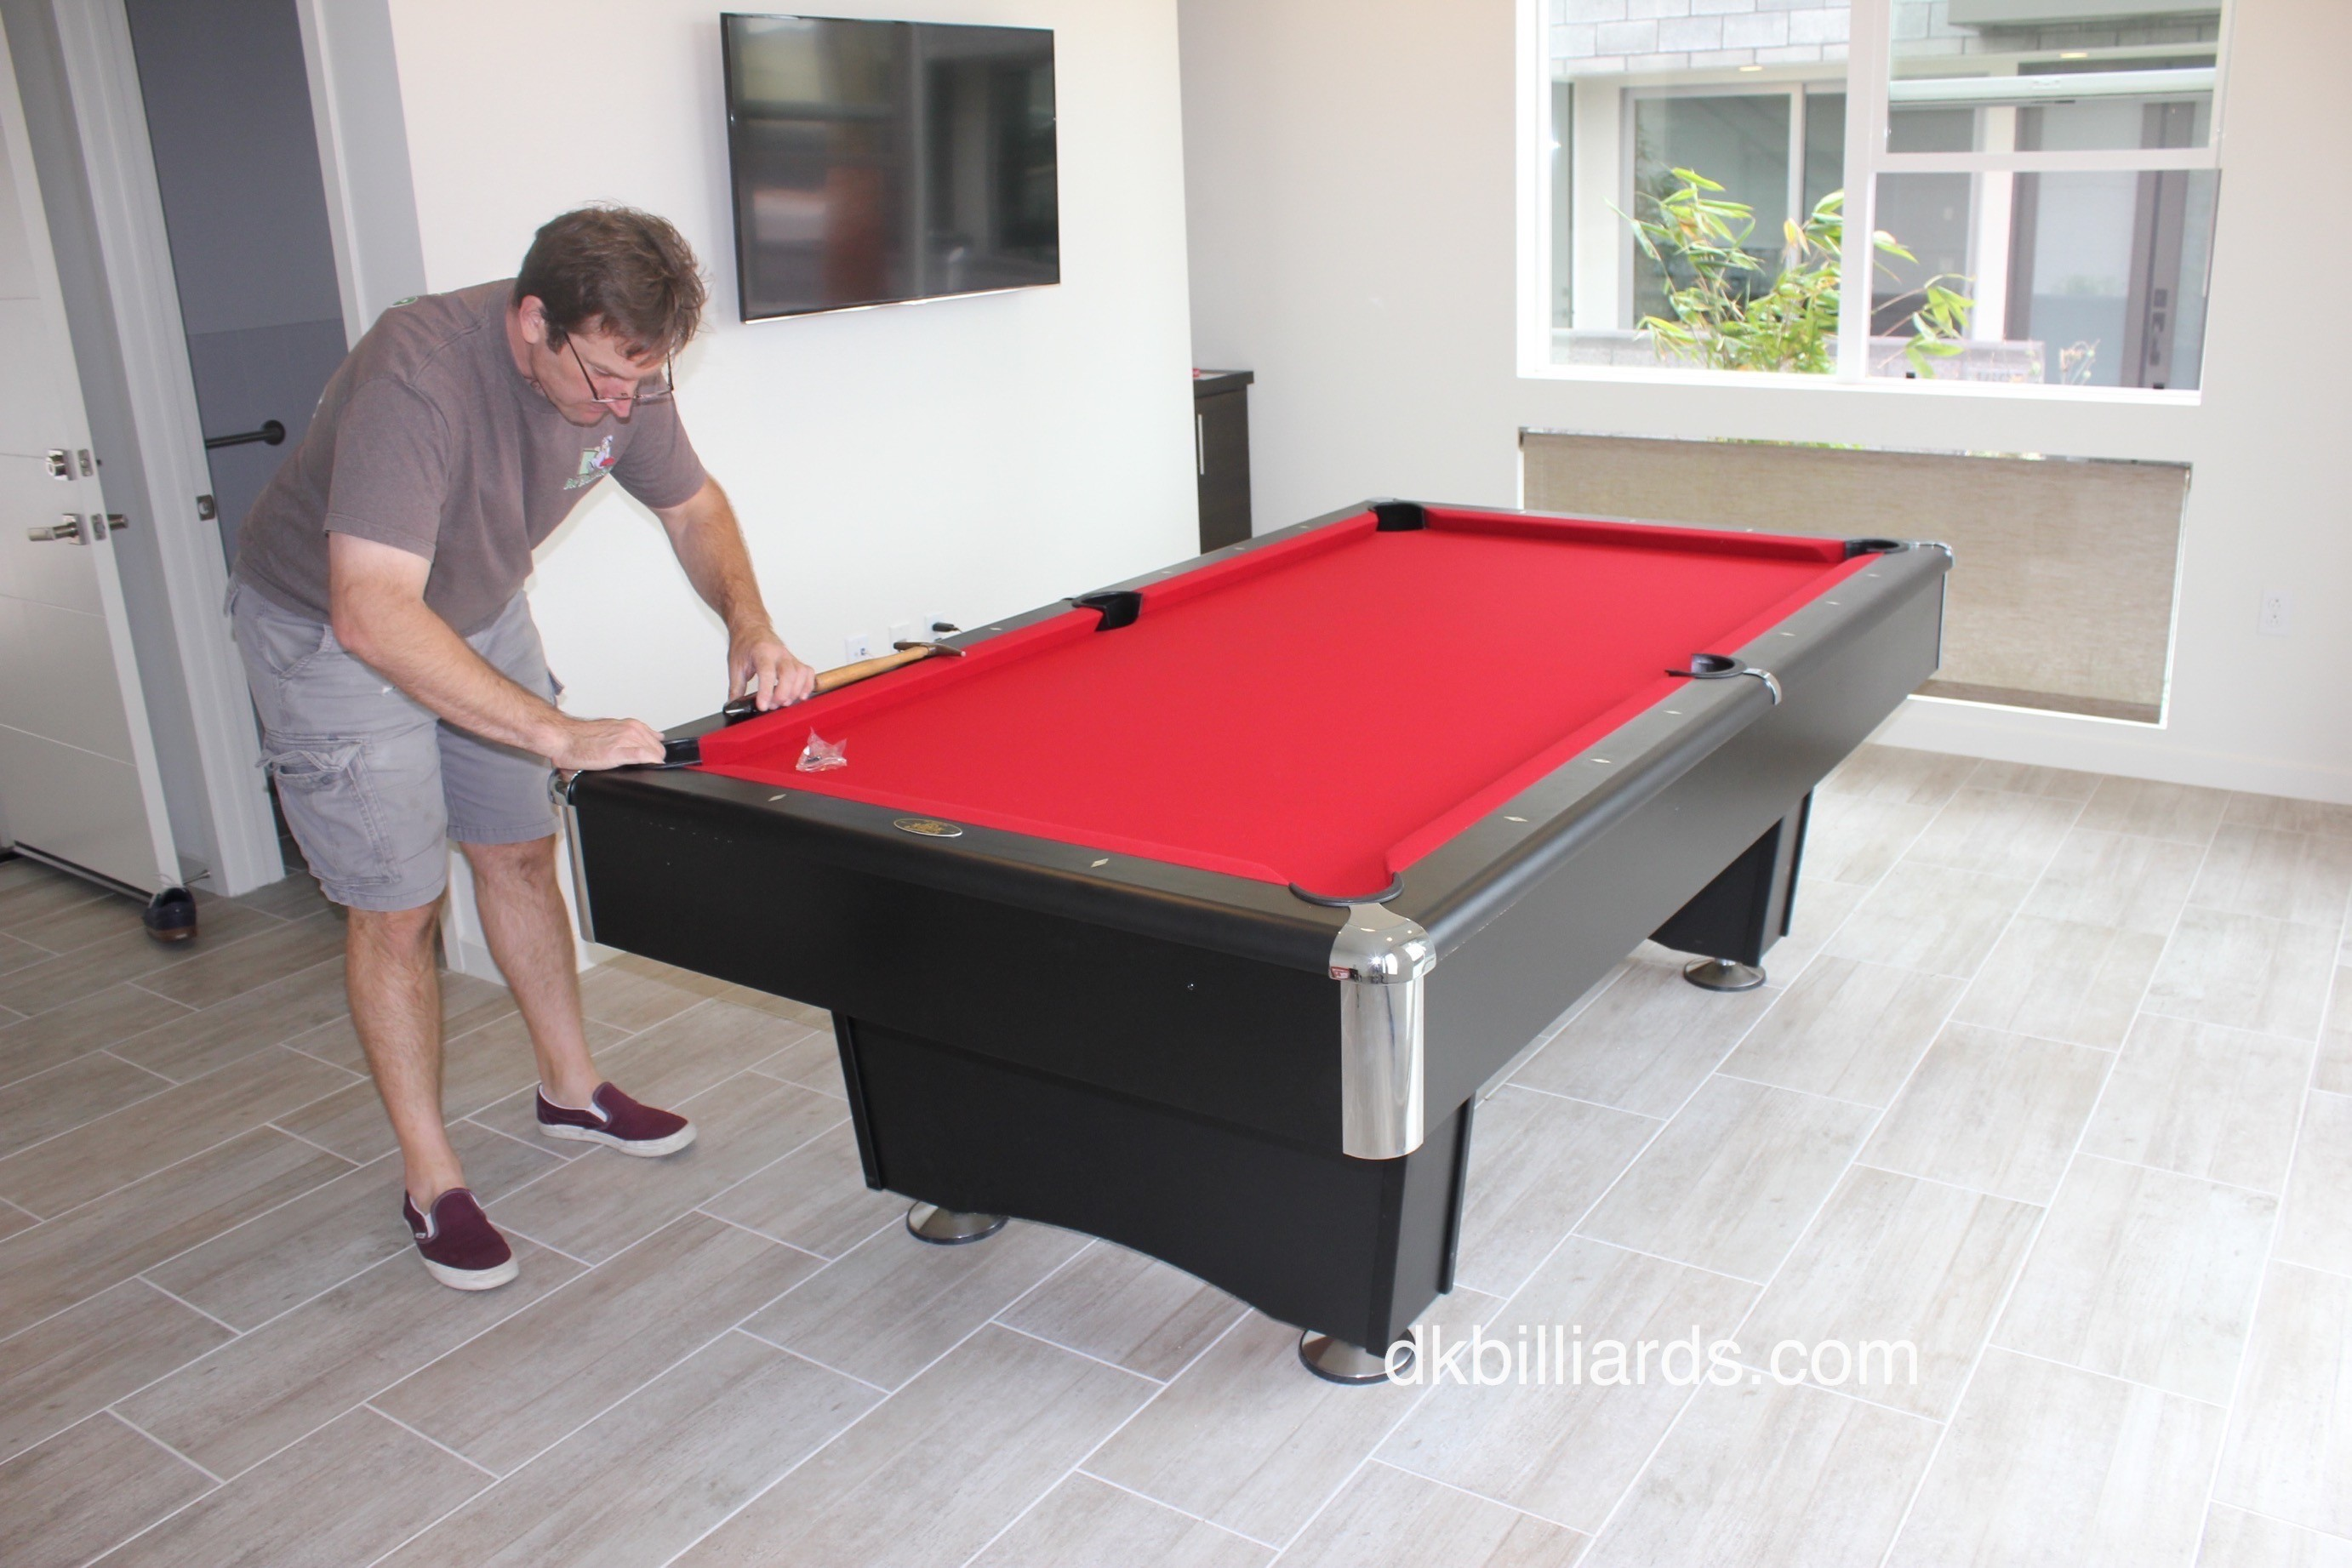 ... To Support The Three Piece, One Inch Slate. K 66 Cushions Give Amazing  Bounce. Surprisingly, The Blackhawk Is One Of The Most Affordable Pool  Tables ...